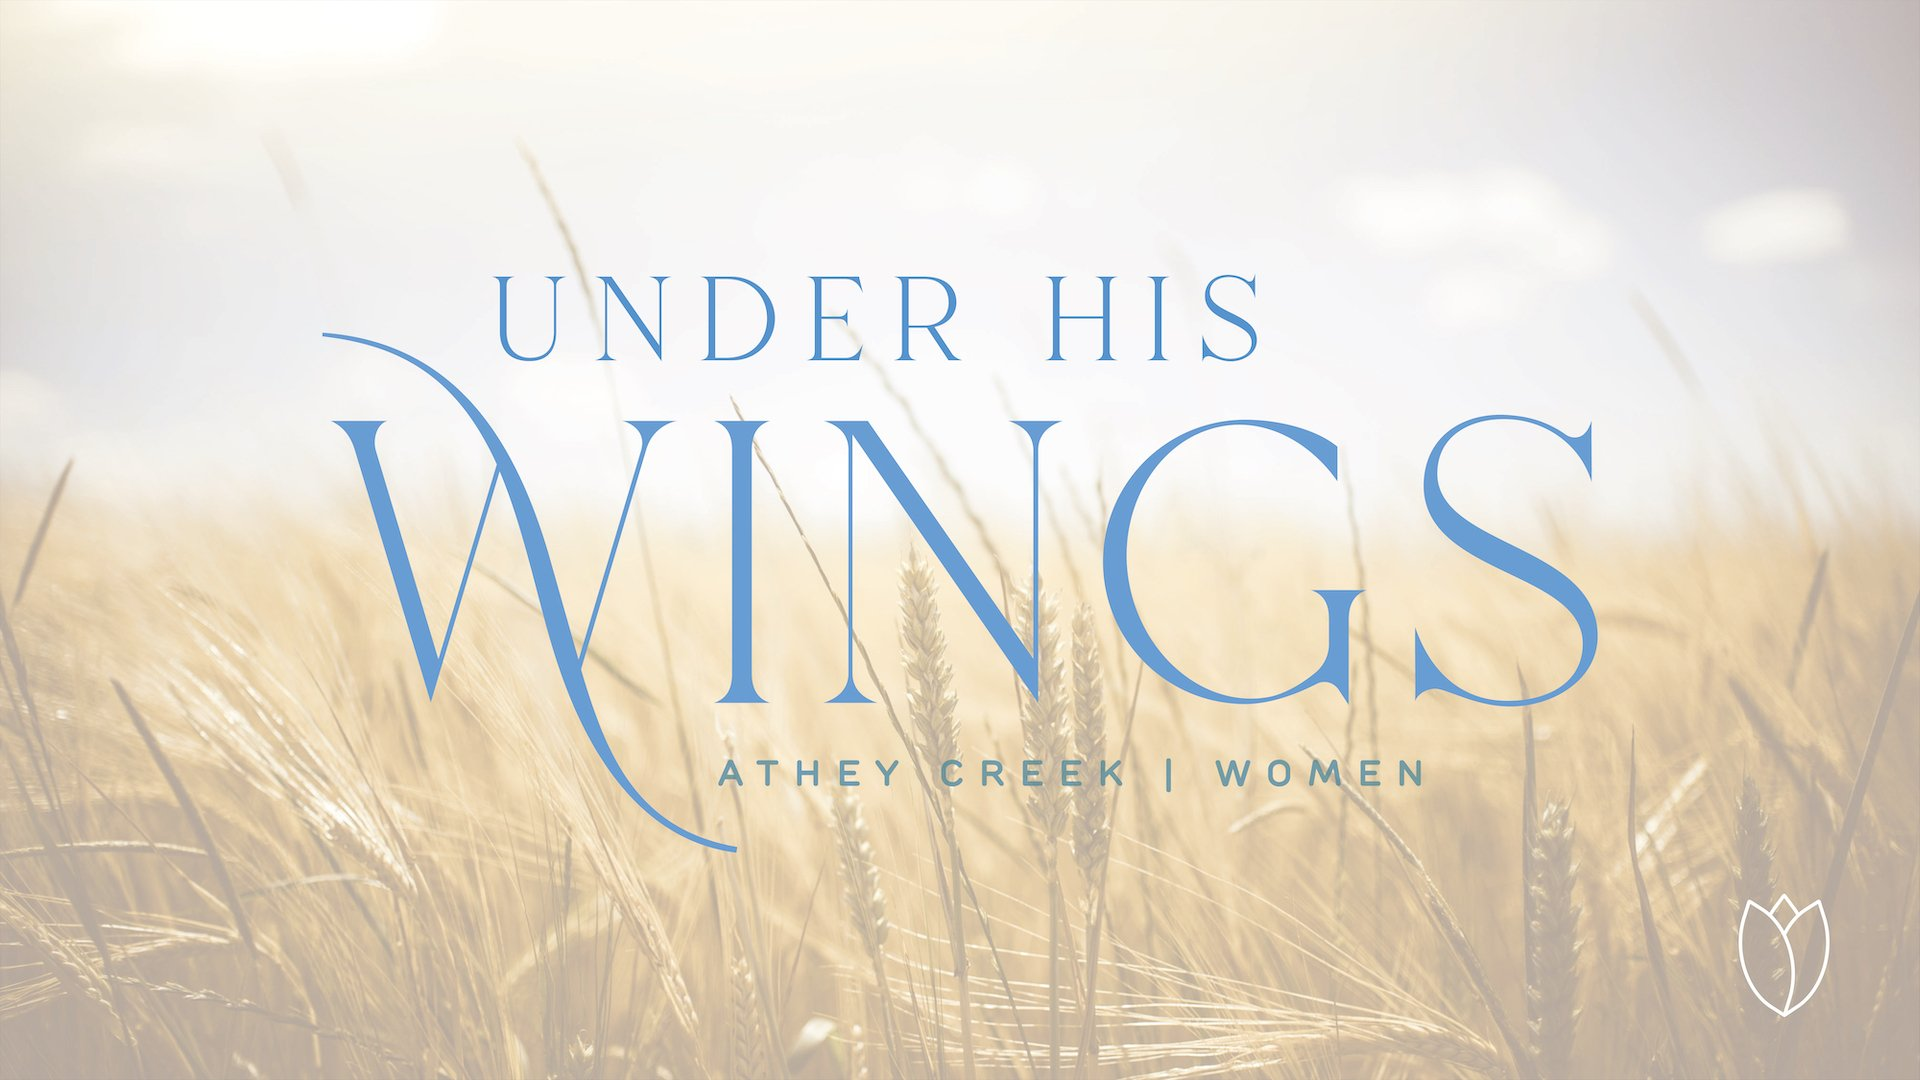 Poster for Under His Wings